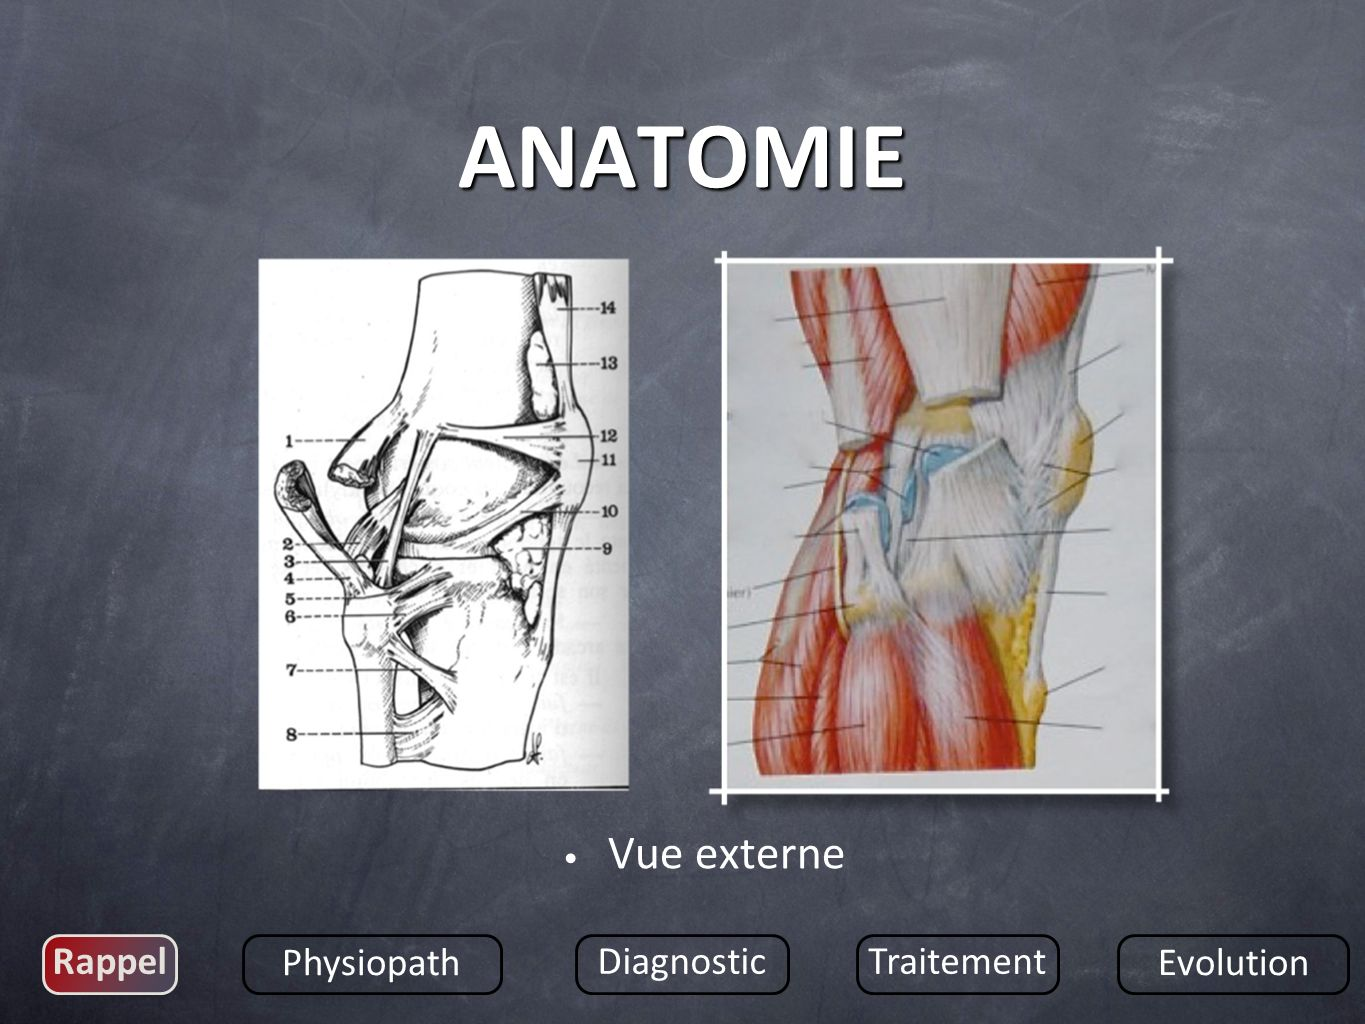 ANATOMIE Vue externe Rappel Physiopath Diagnostic Traitement Evolution